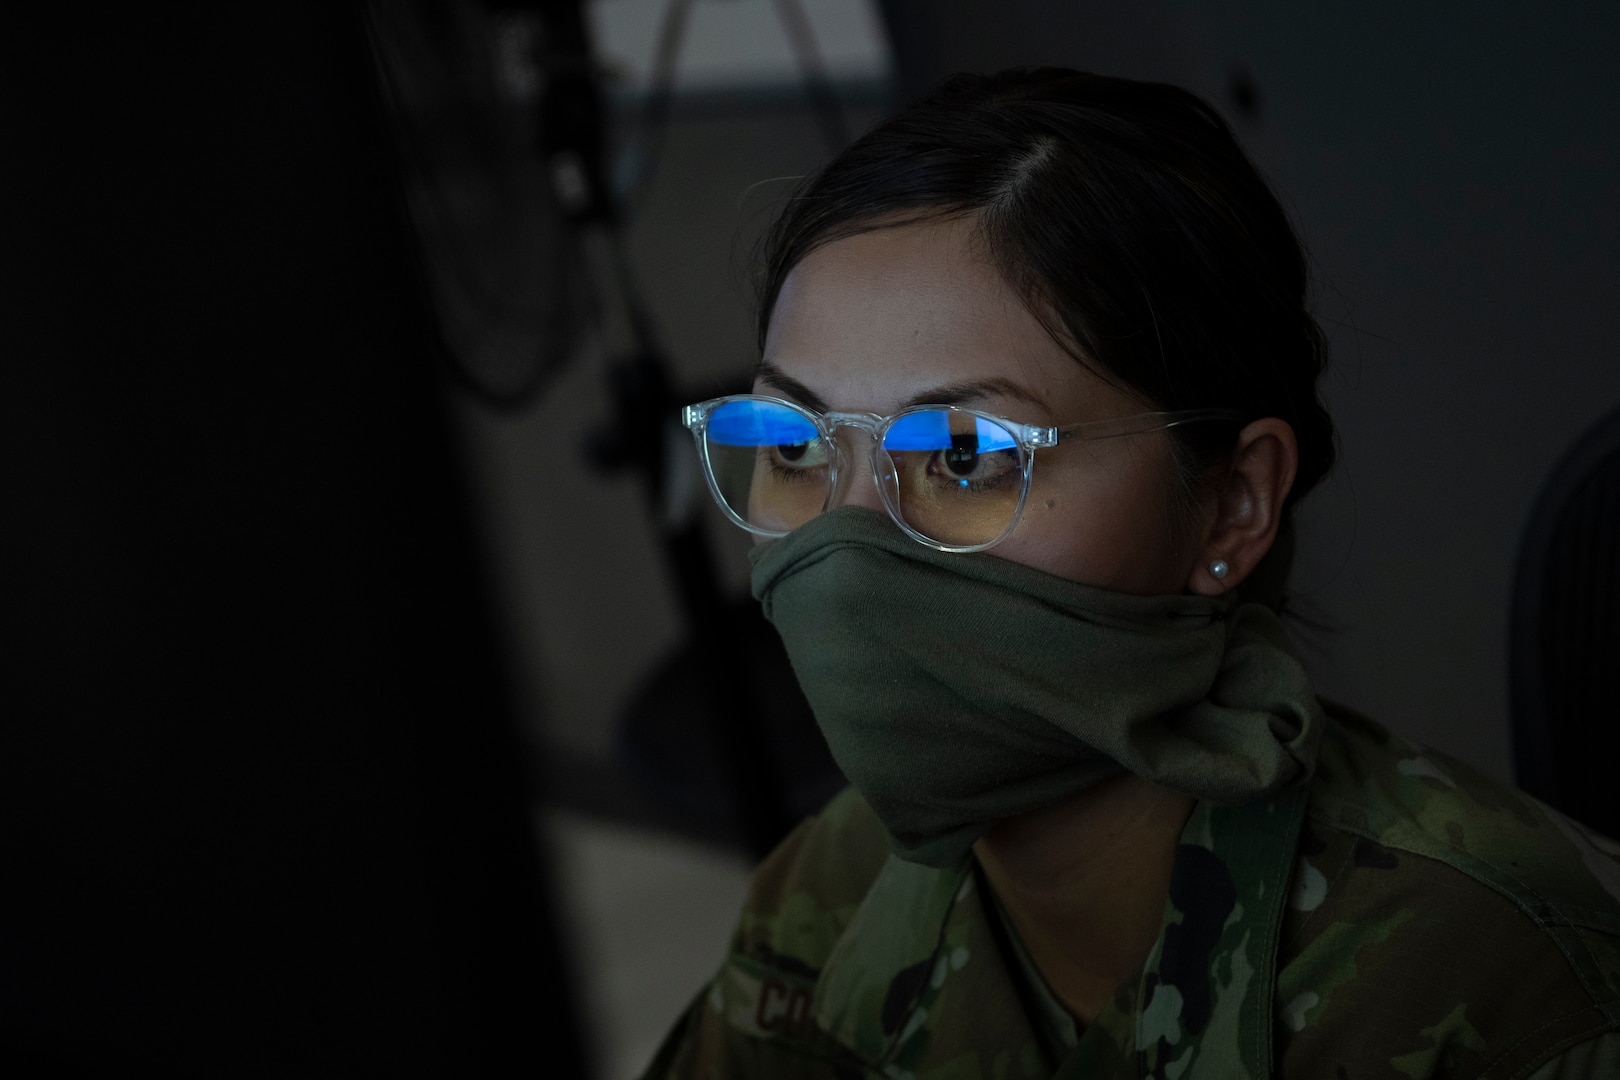 An Airman assigned to the 609th Air Operations Center performs tasks inside the Combined Air Operations Center at Al Udeid Air Base, Qatar, April 20, 2020.